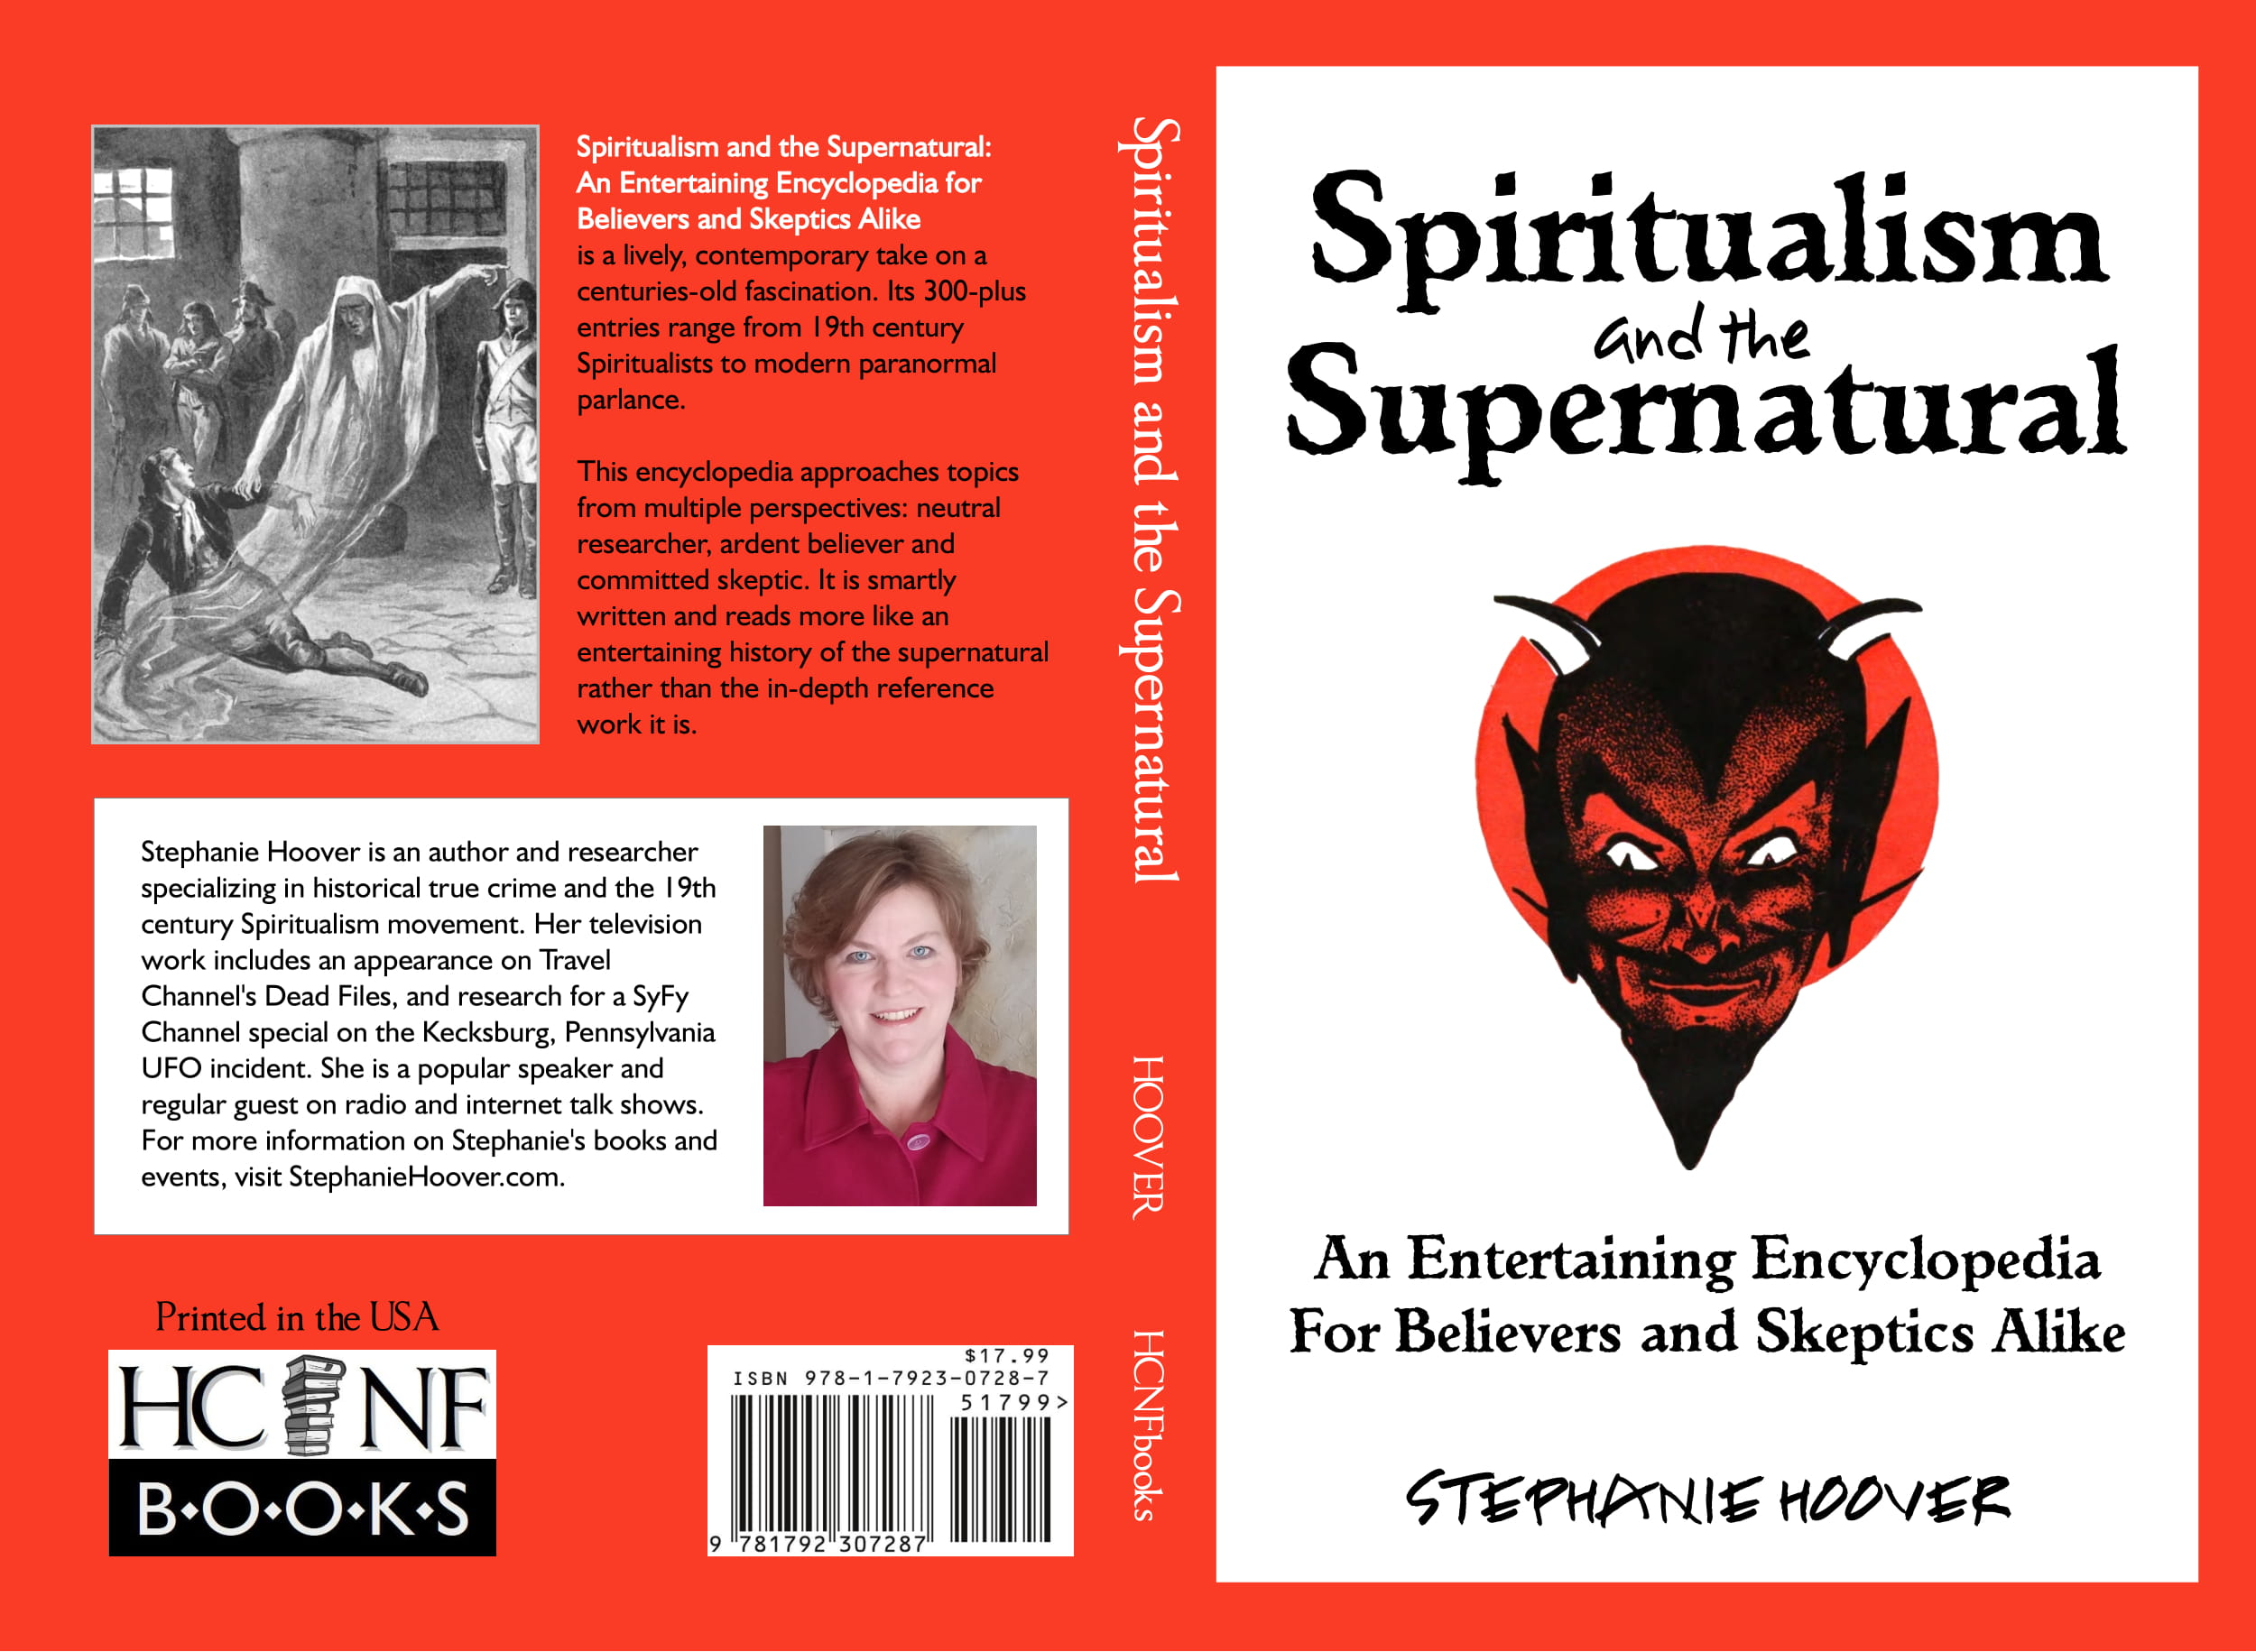 Spiritualism and the Supernatural book cover